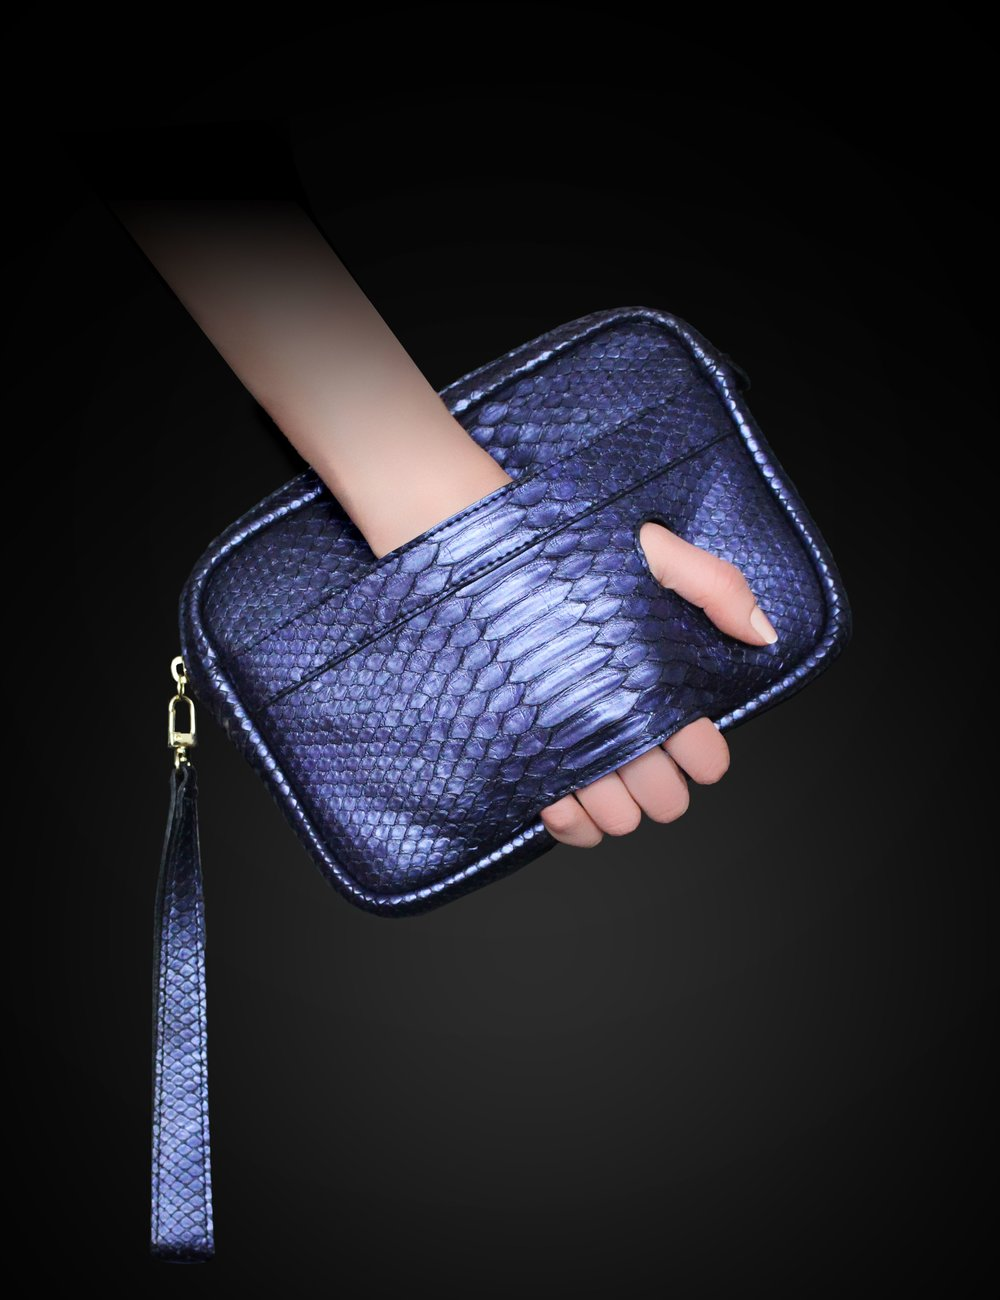 Intira Clutch - View The Details